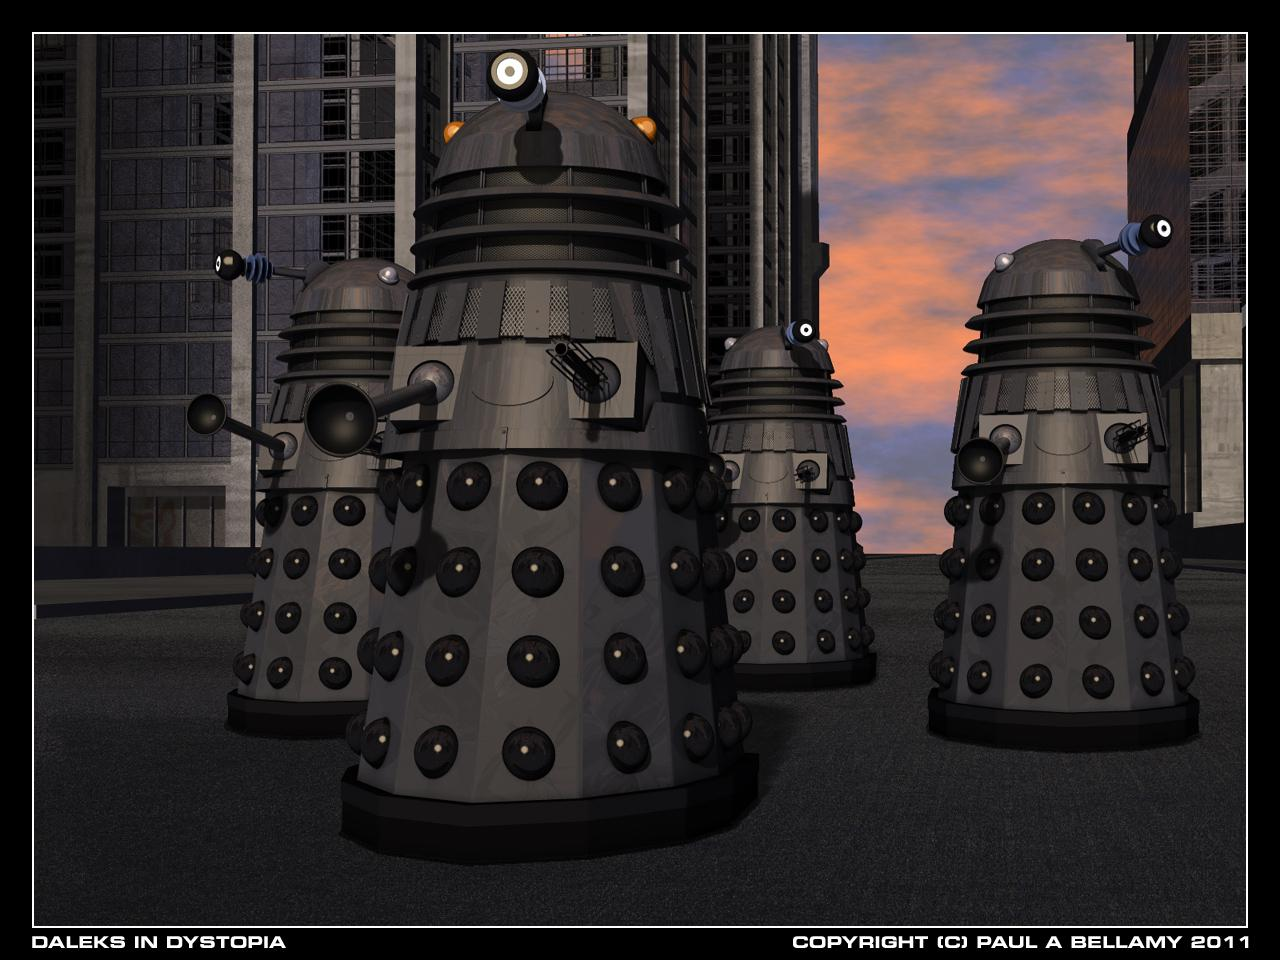 Daleks in Dystopia by SamTherapy